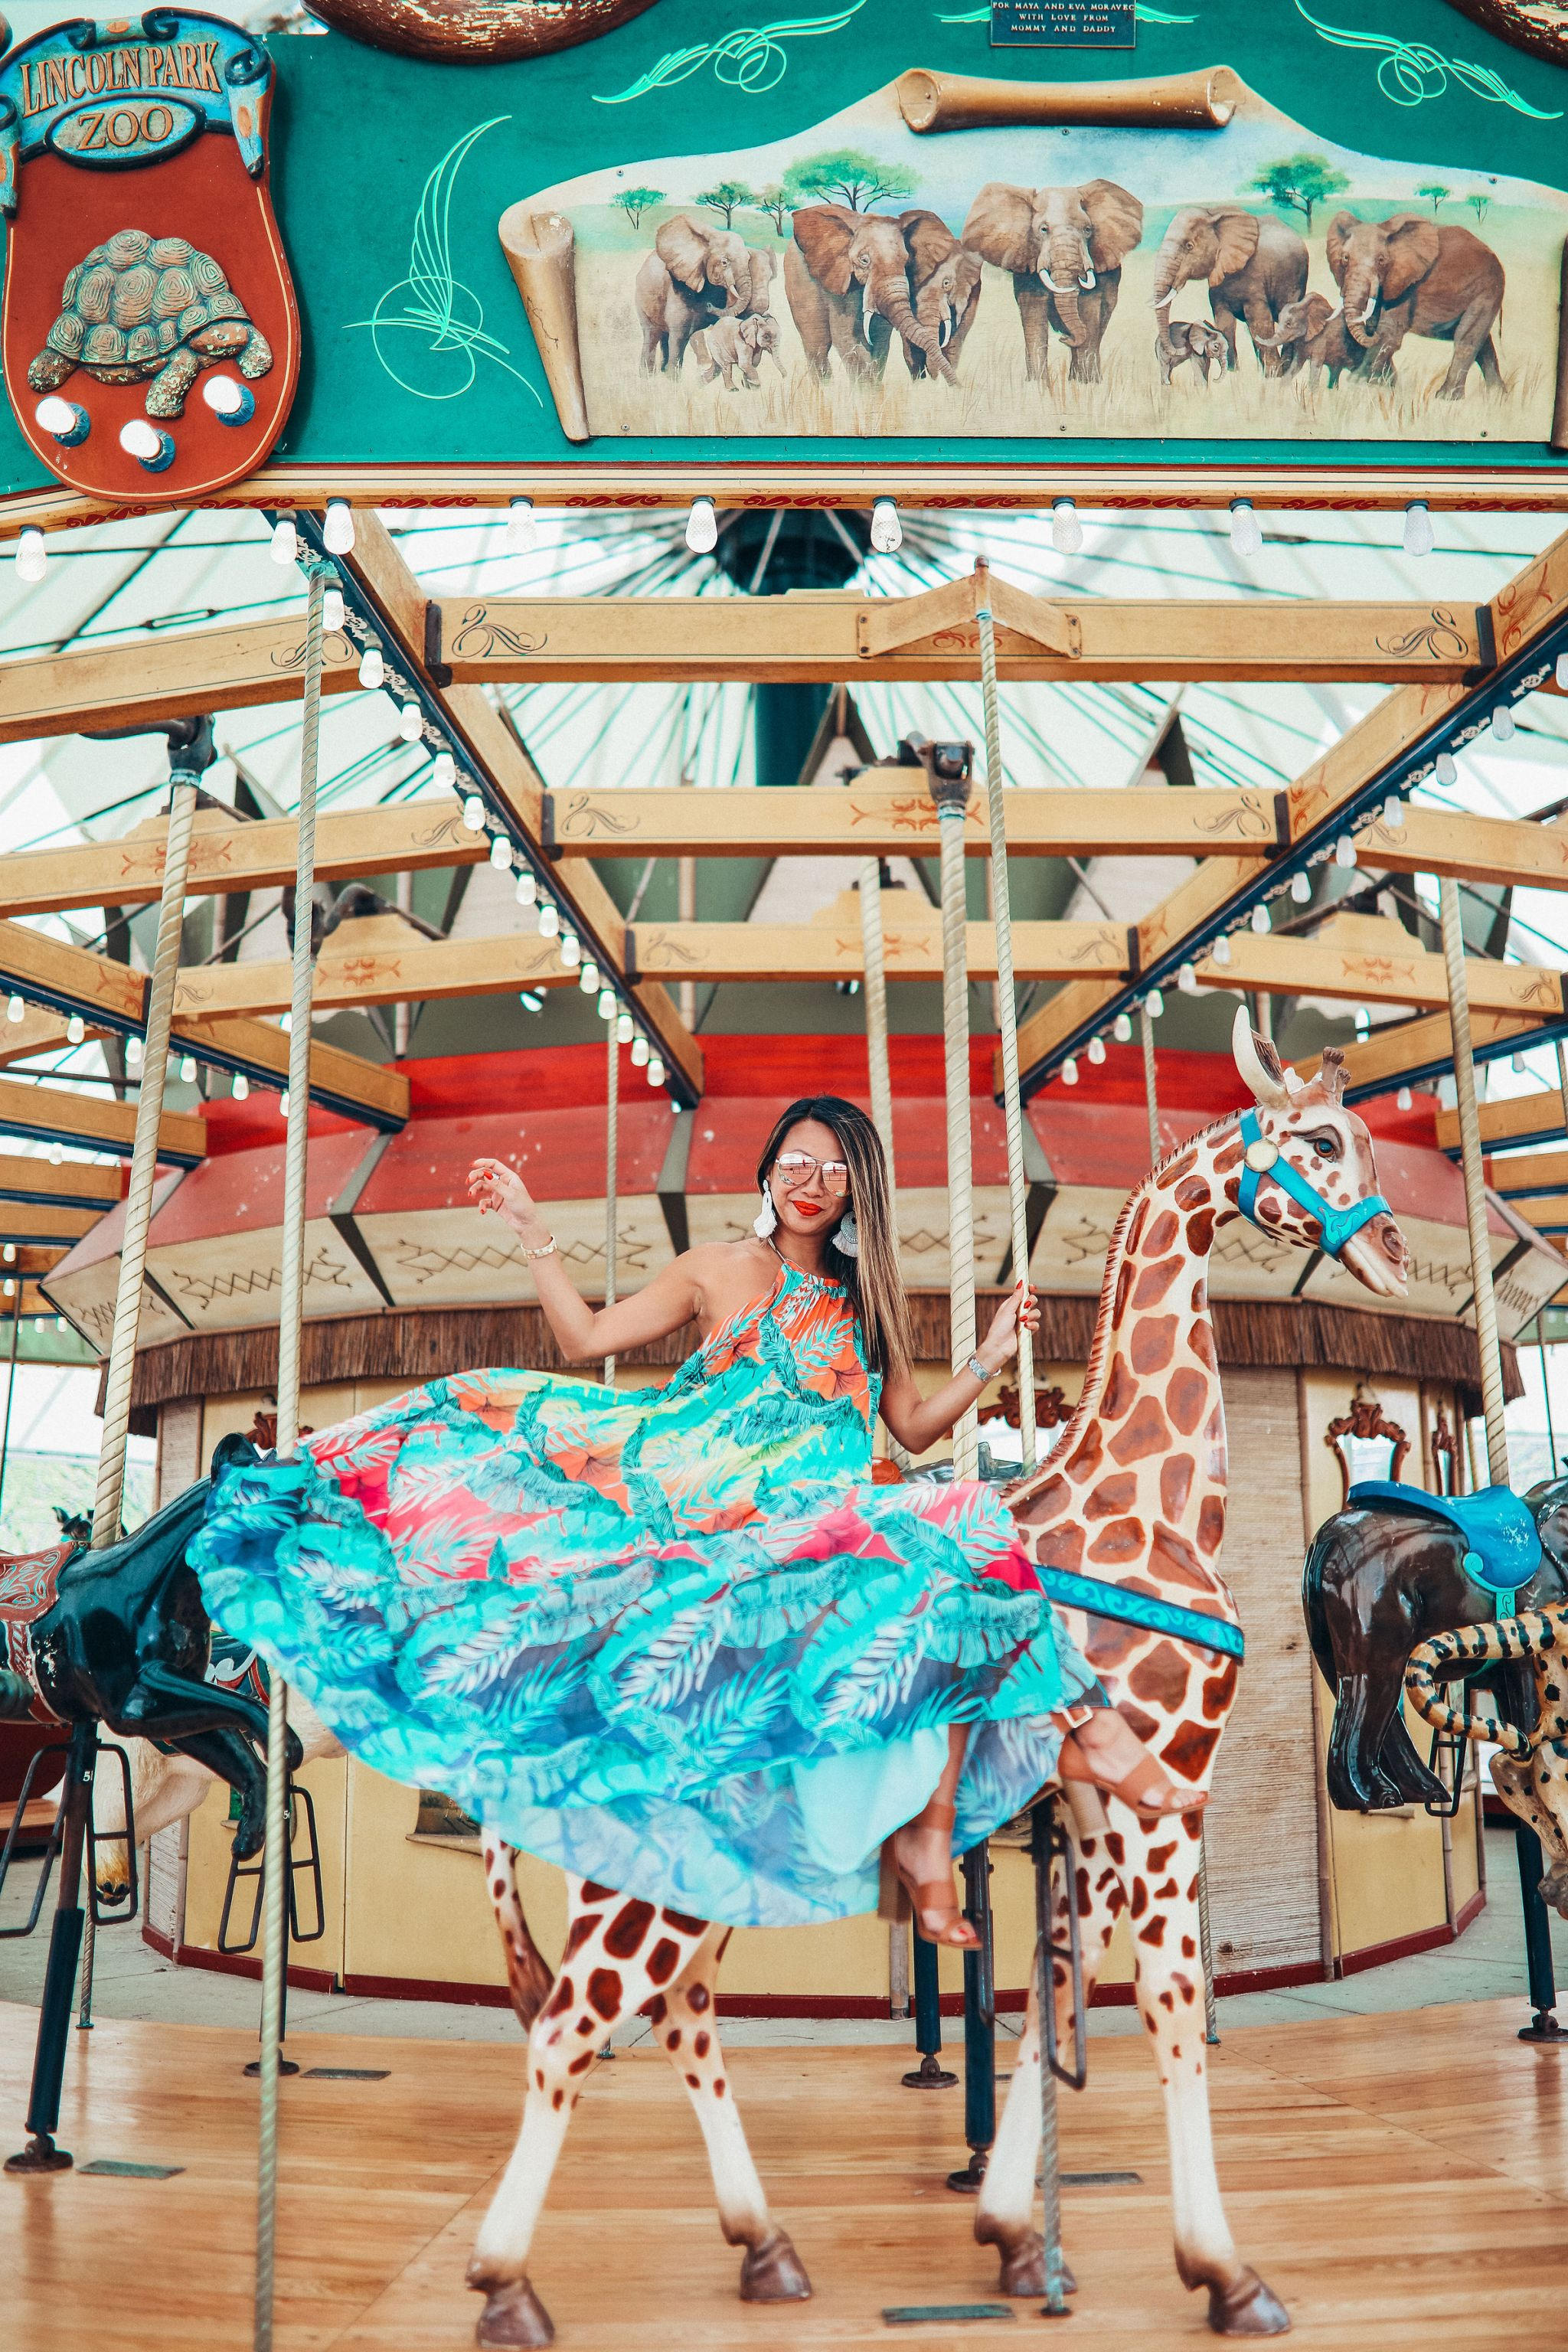 Lincoln Park Zoo Carousel, Chicago Style blogger, Best Maxi Dress for Summer, Akira Maxi Dress, Best spots to take instagram photos in Chicago, Merry Go Round Photo, where to go in chicago with kids, Zoo-ologie, Chicago Style Photography,. Jennifer Worman, Chicago Mom Blogger